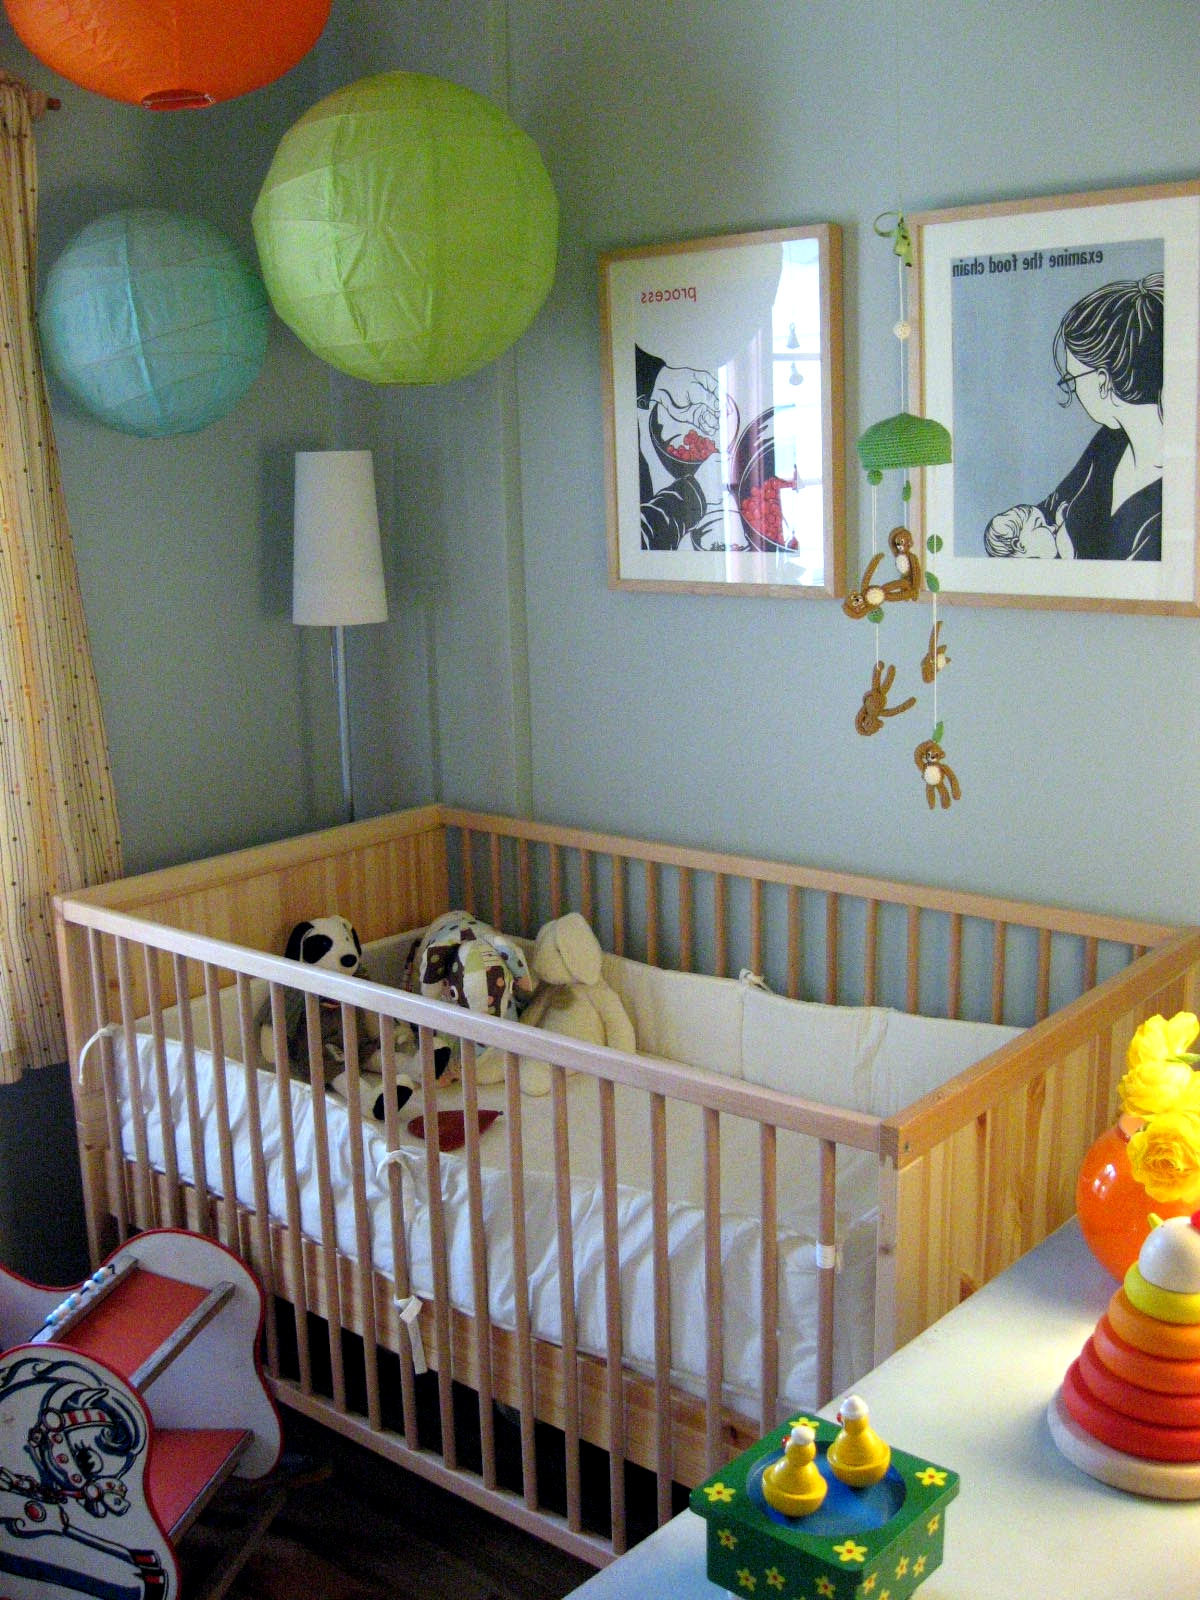 Baby Room Decorating Ideas with Paper Lanterns  Interior Design Ideas  AVSOORG